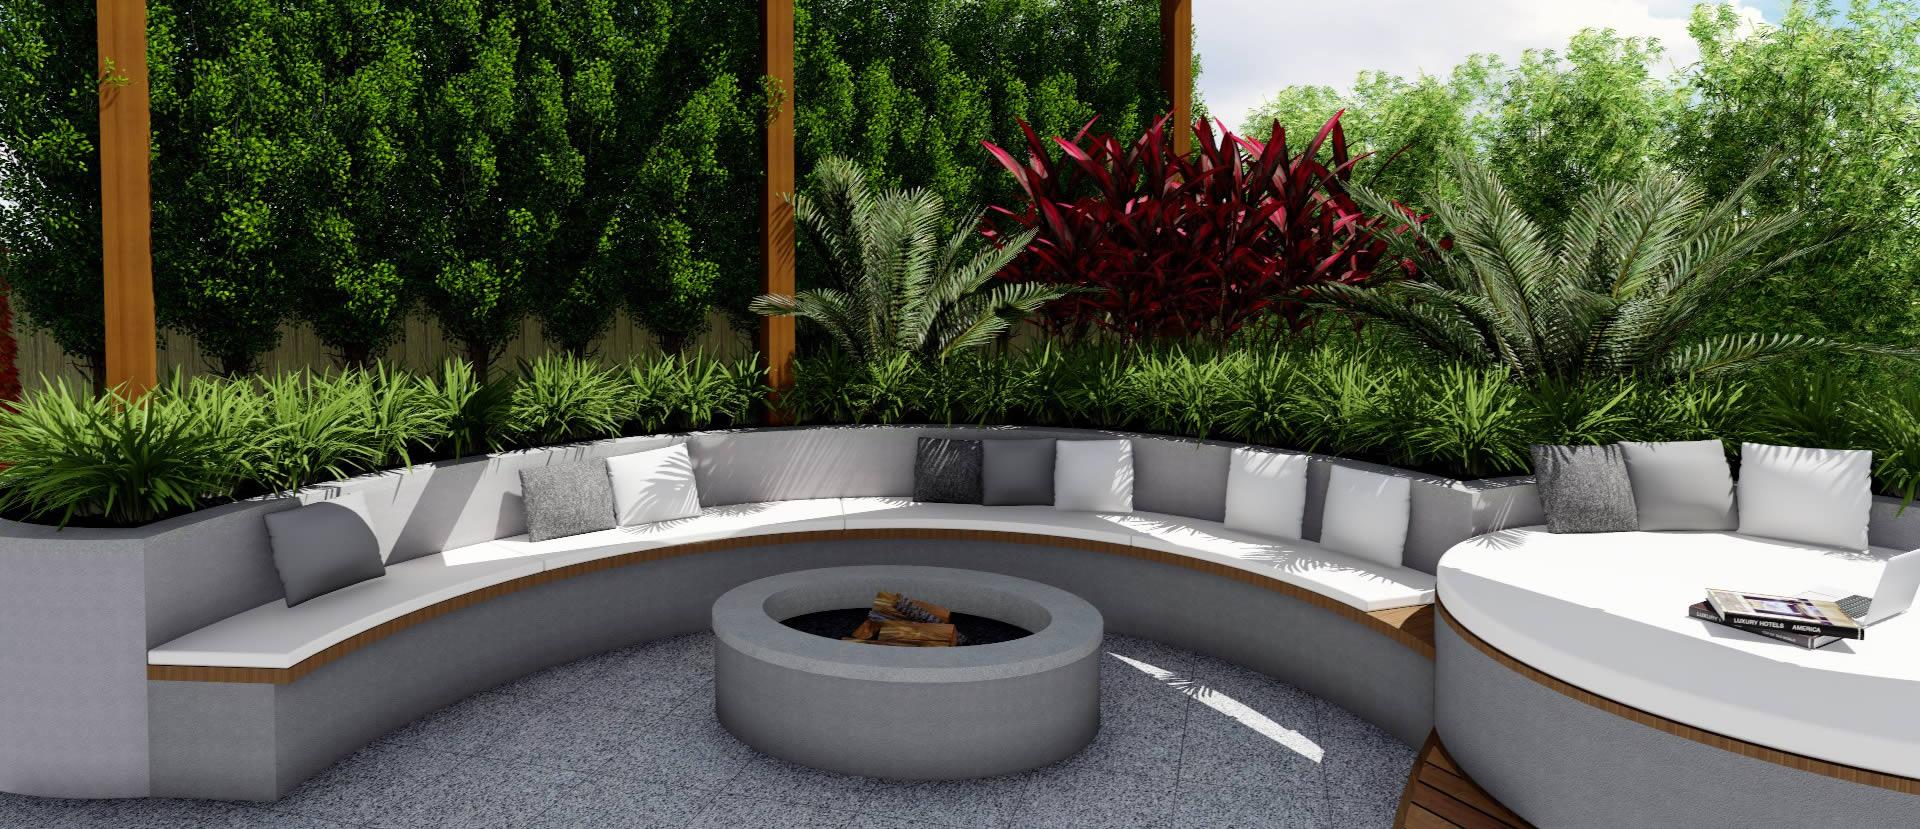 3D Landscape Design Services